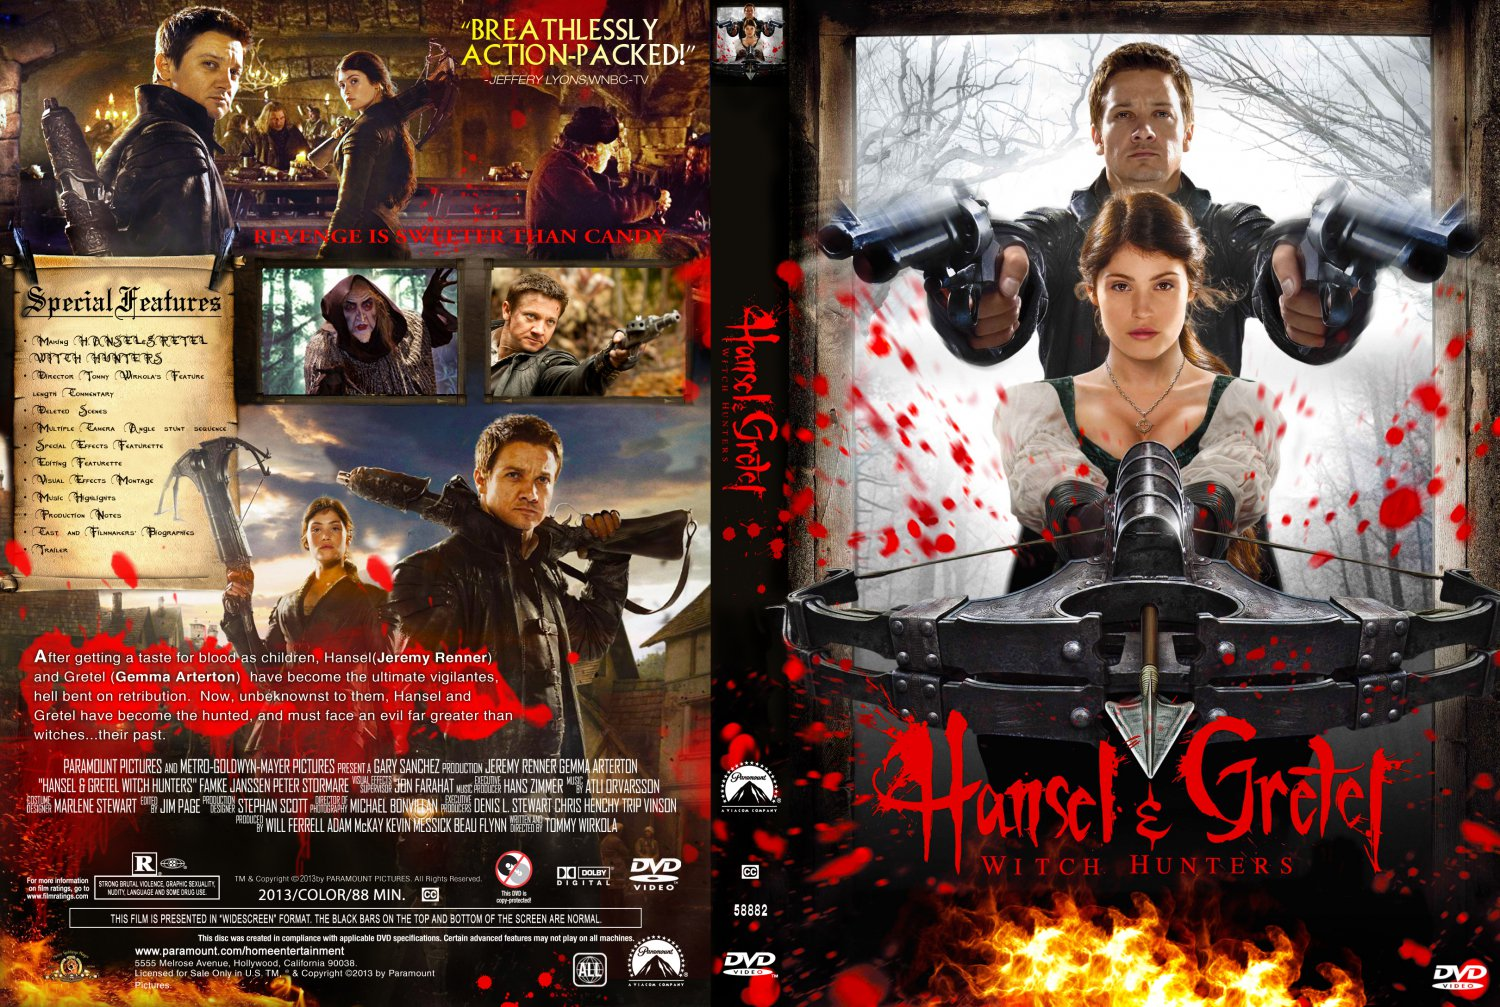 Covers Box Sk Hansel Gretel Witch Hunter 2013 High Quality Dvd Blueray Movie